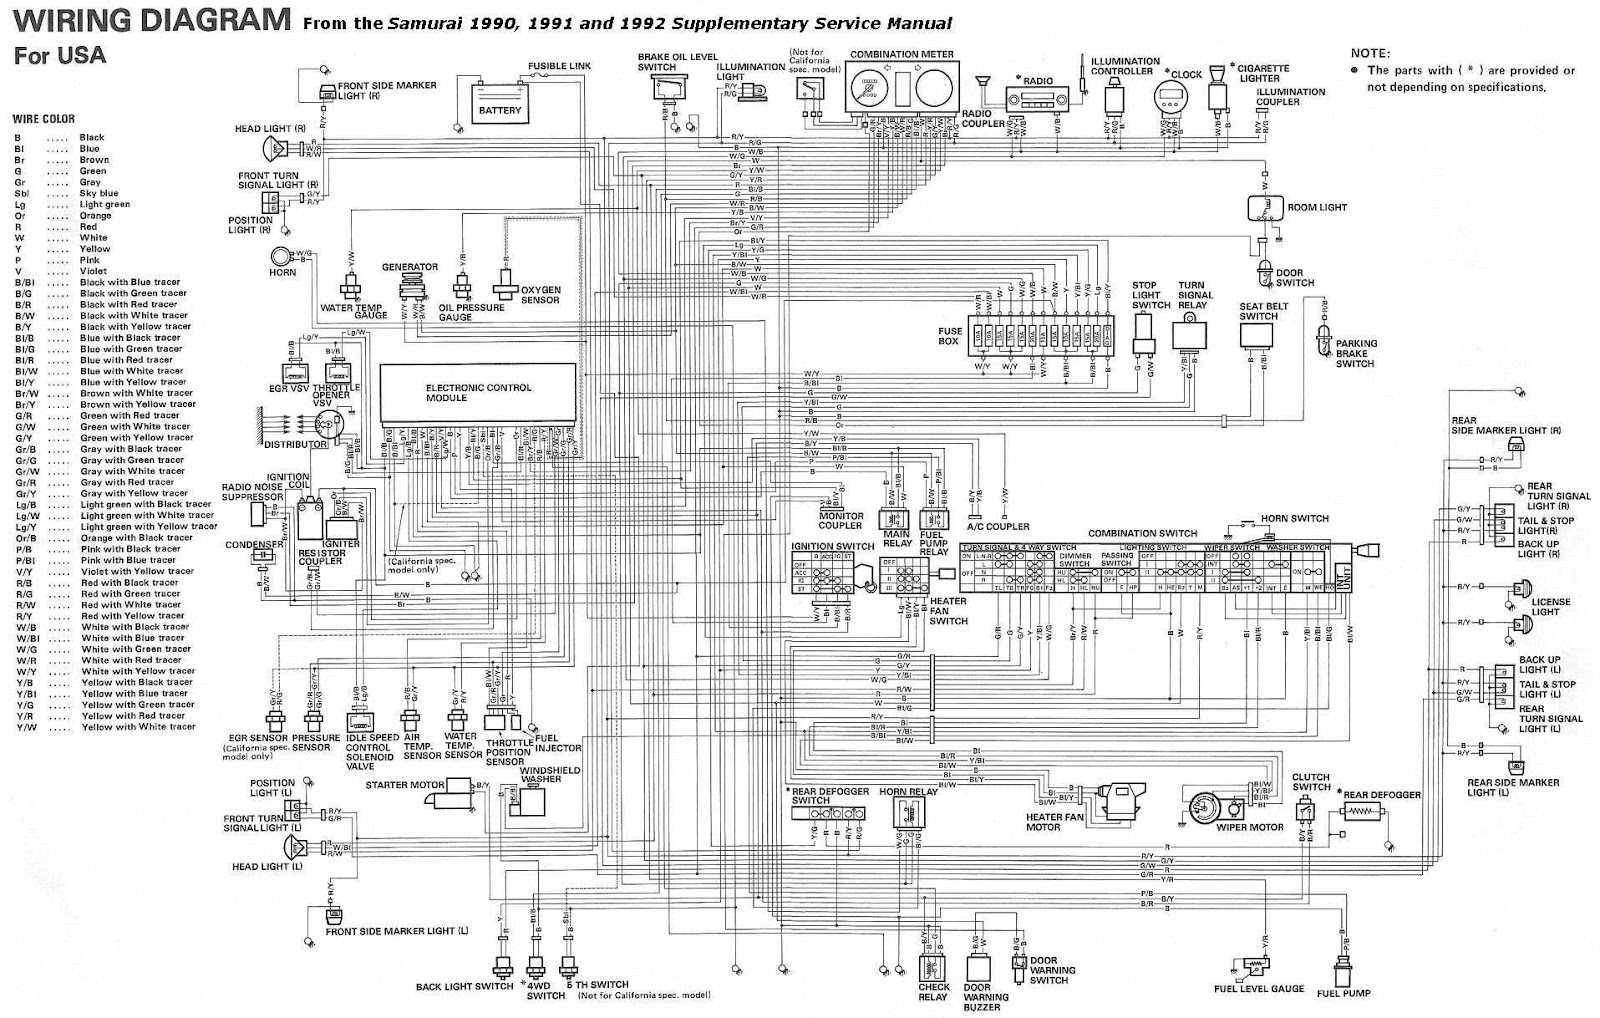 Terrific Ford 6600 Tractor Wiring Diagram Contemporary - Best Image ...